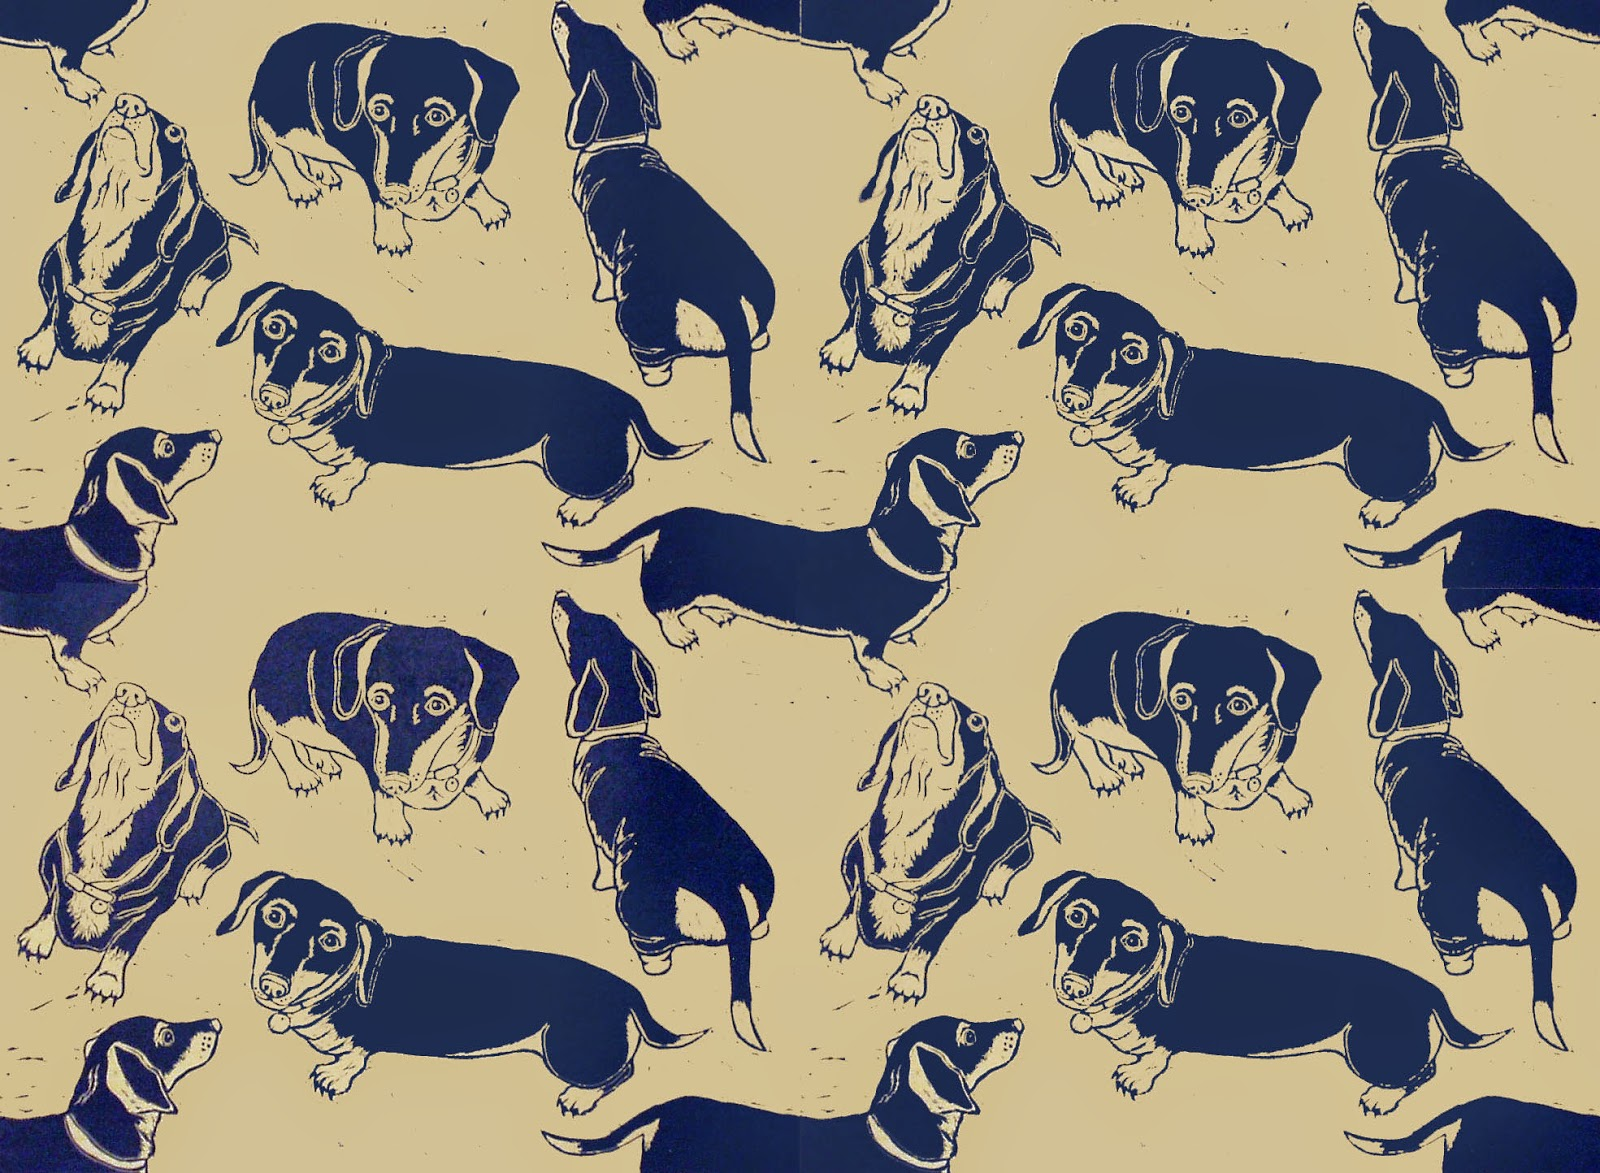 Dachshund linocut print as repeat pattern